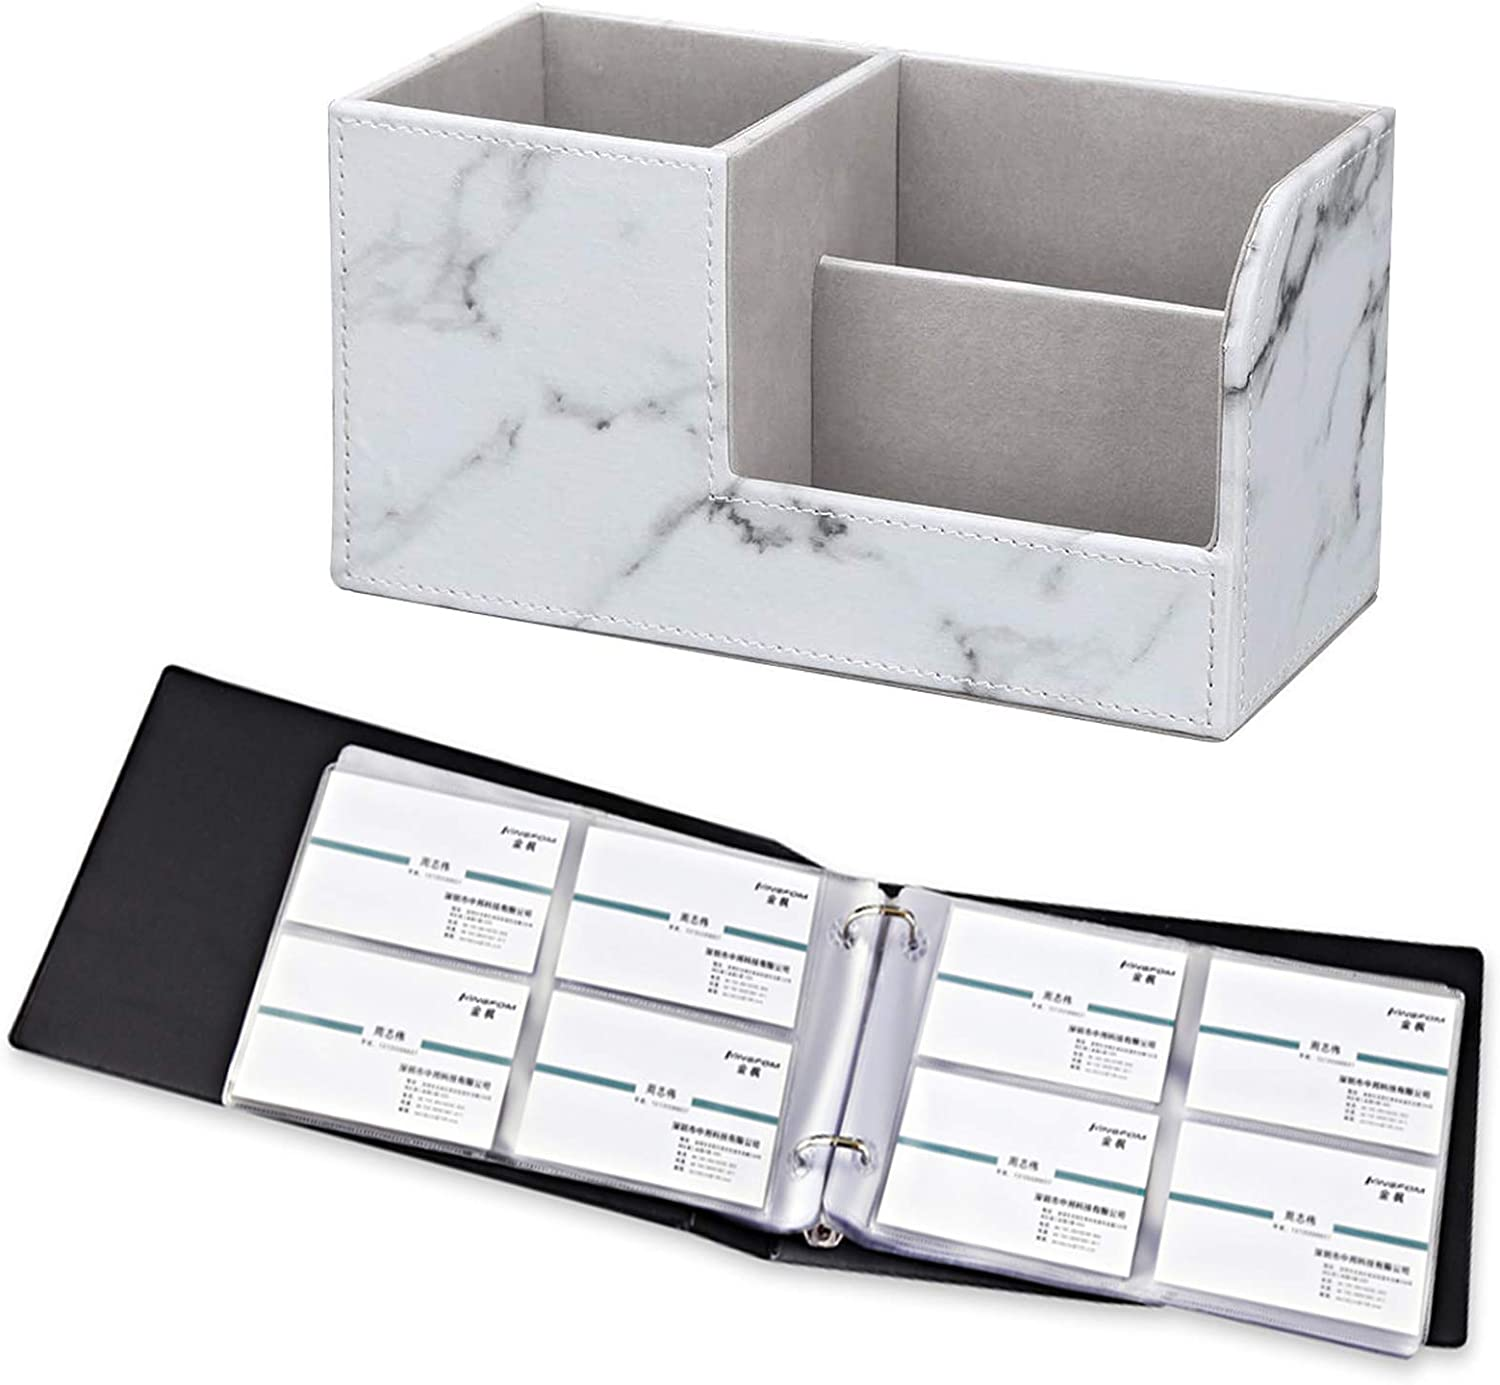 KINGFOM Pu Leather Multi-function Desk Organizer Offices Supplies Stationery Storage Box Pen/Pencil,Cell phone, Business Name Cards Remote Control Holder + Business Name Card Organizer Holds 240 Cards